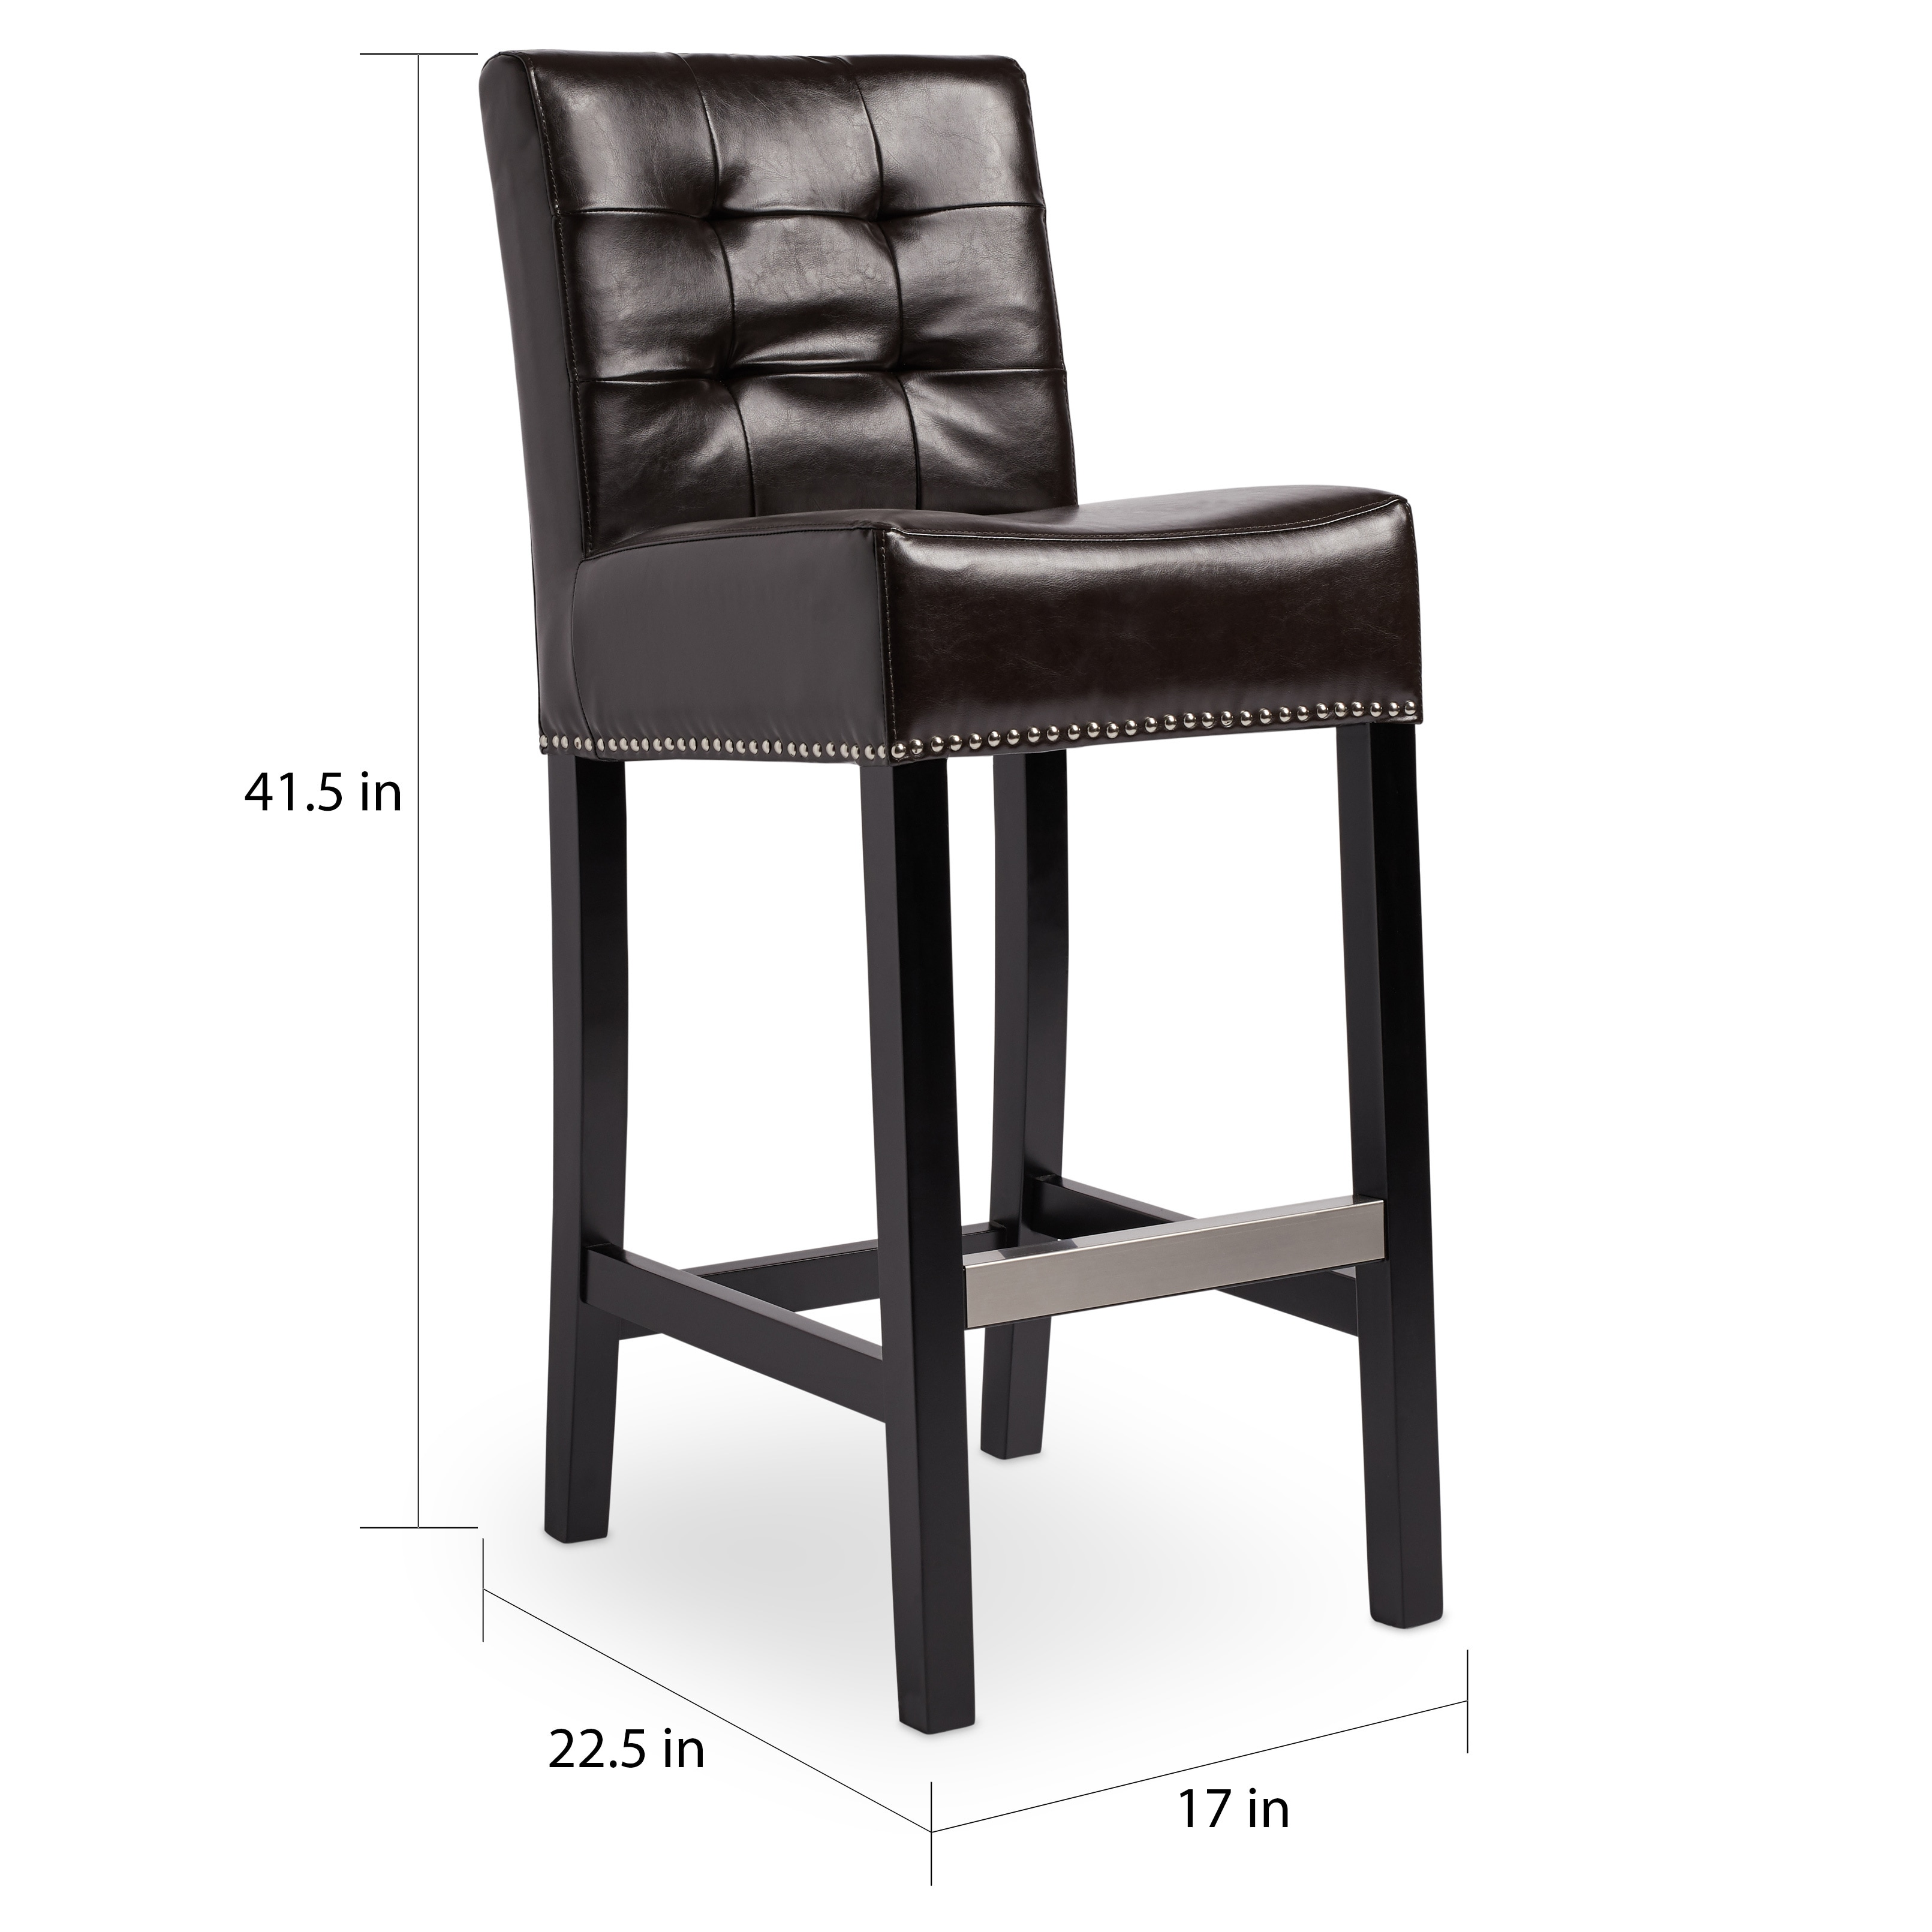 Abbyson Masimo 30 Inch Dark Brown Bonded Leather Bar Stool Free Shipping Today 9557834